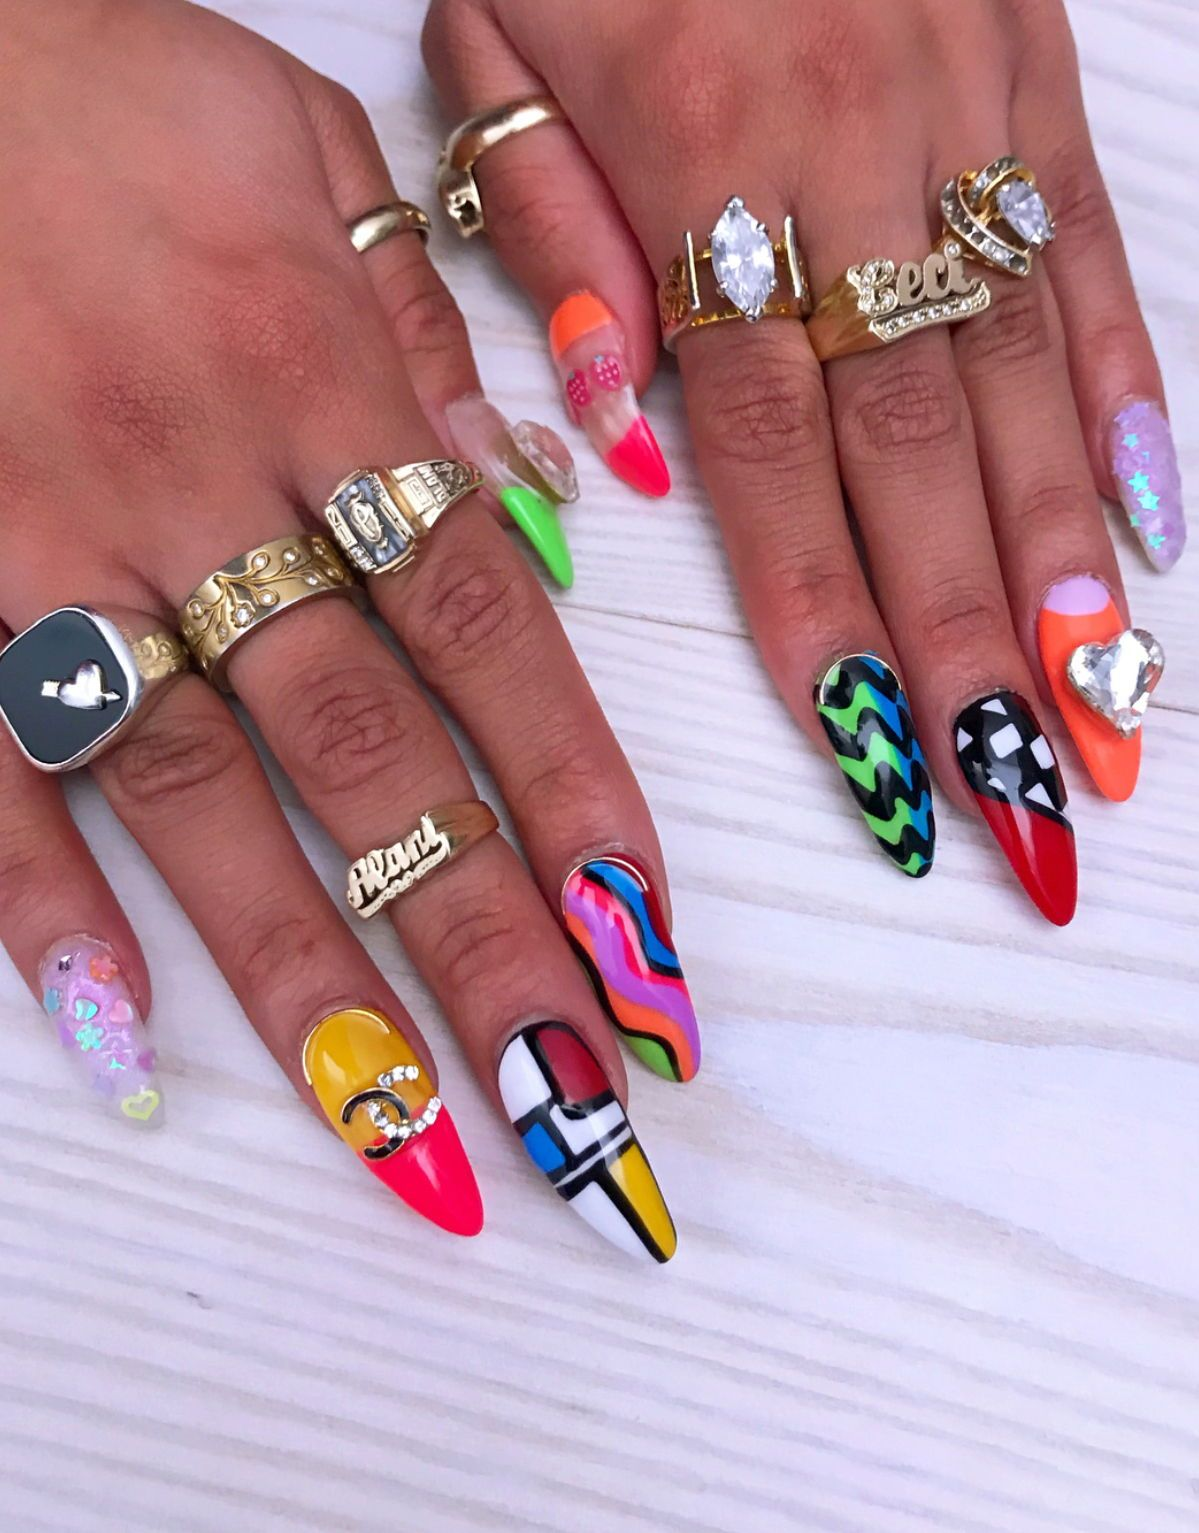 Crazy Cool Nail Art Nail Designs Pinterest Nail Shop Amazing